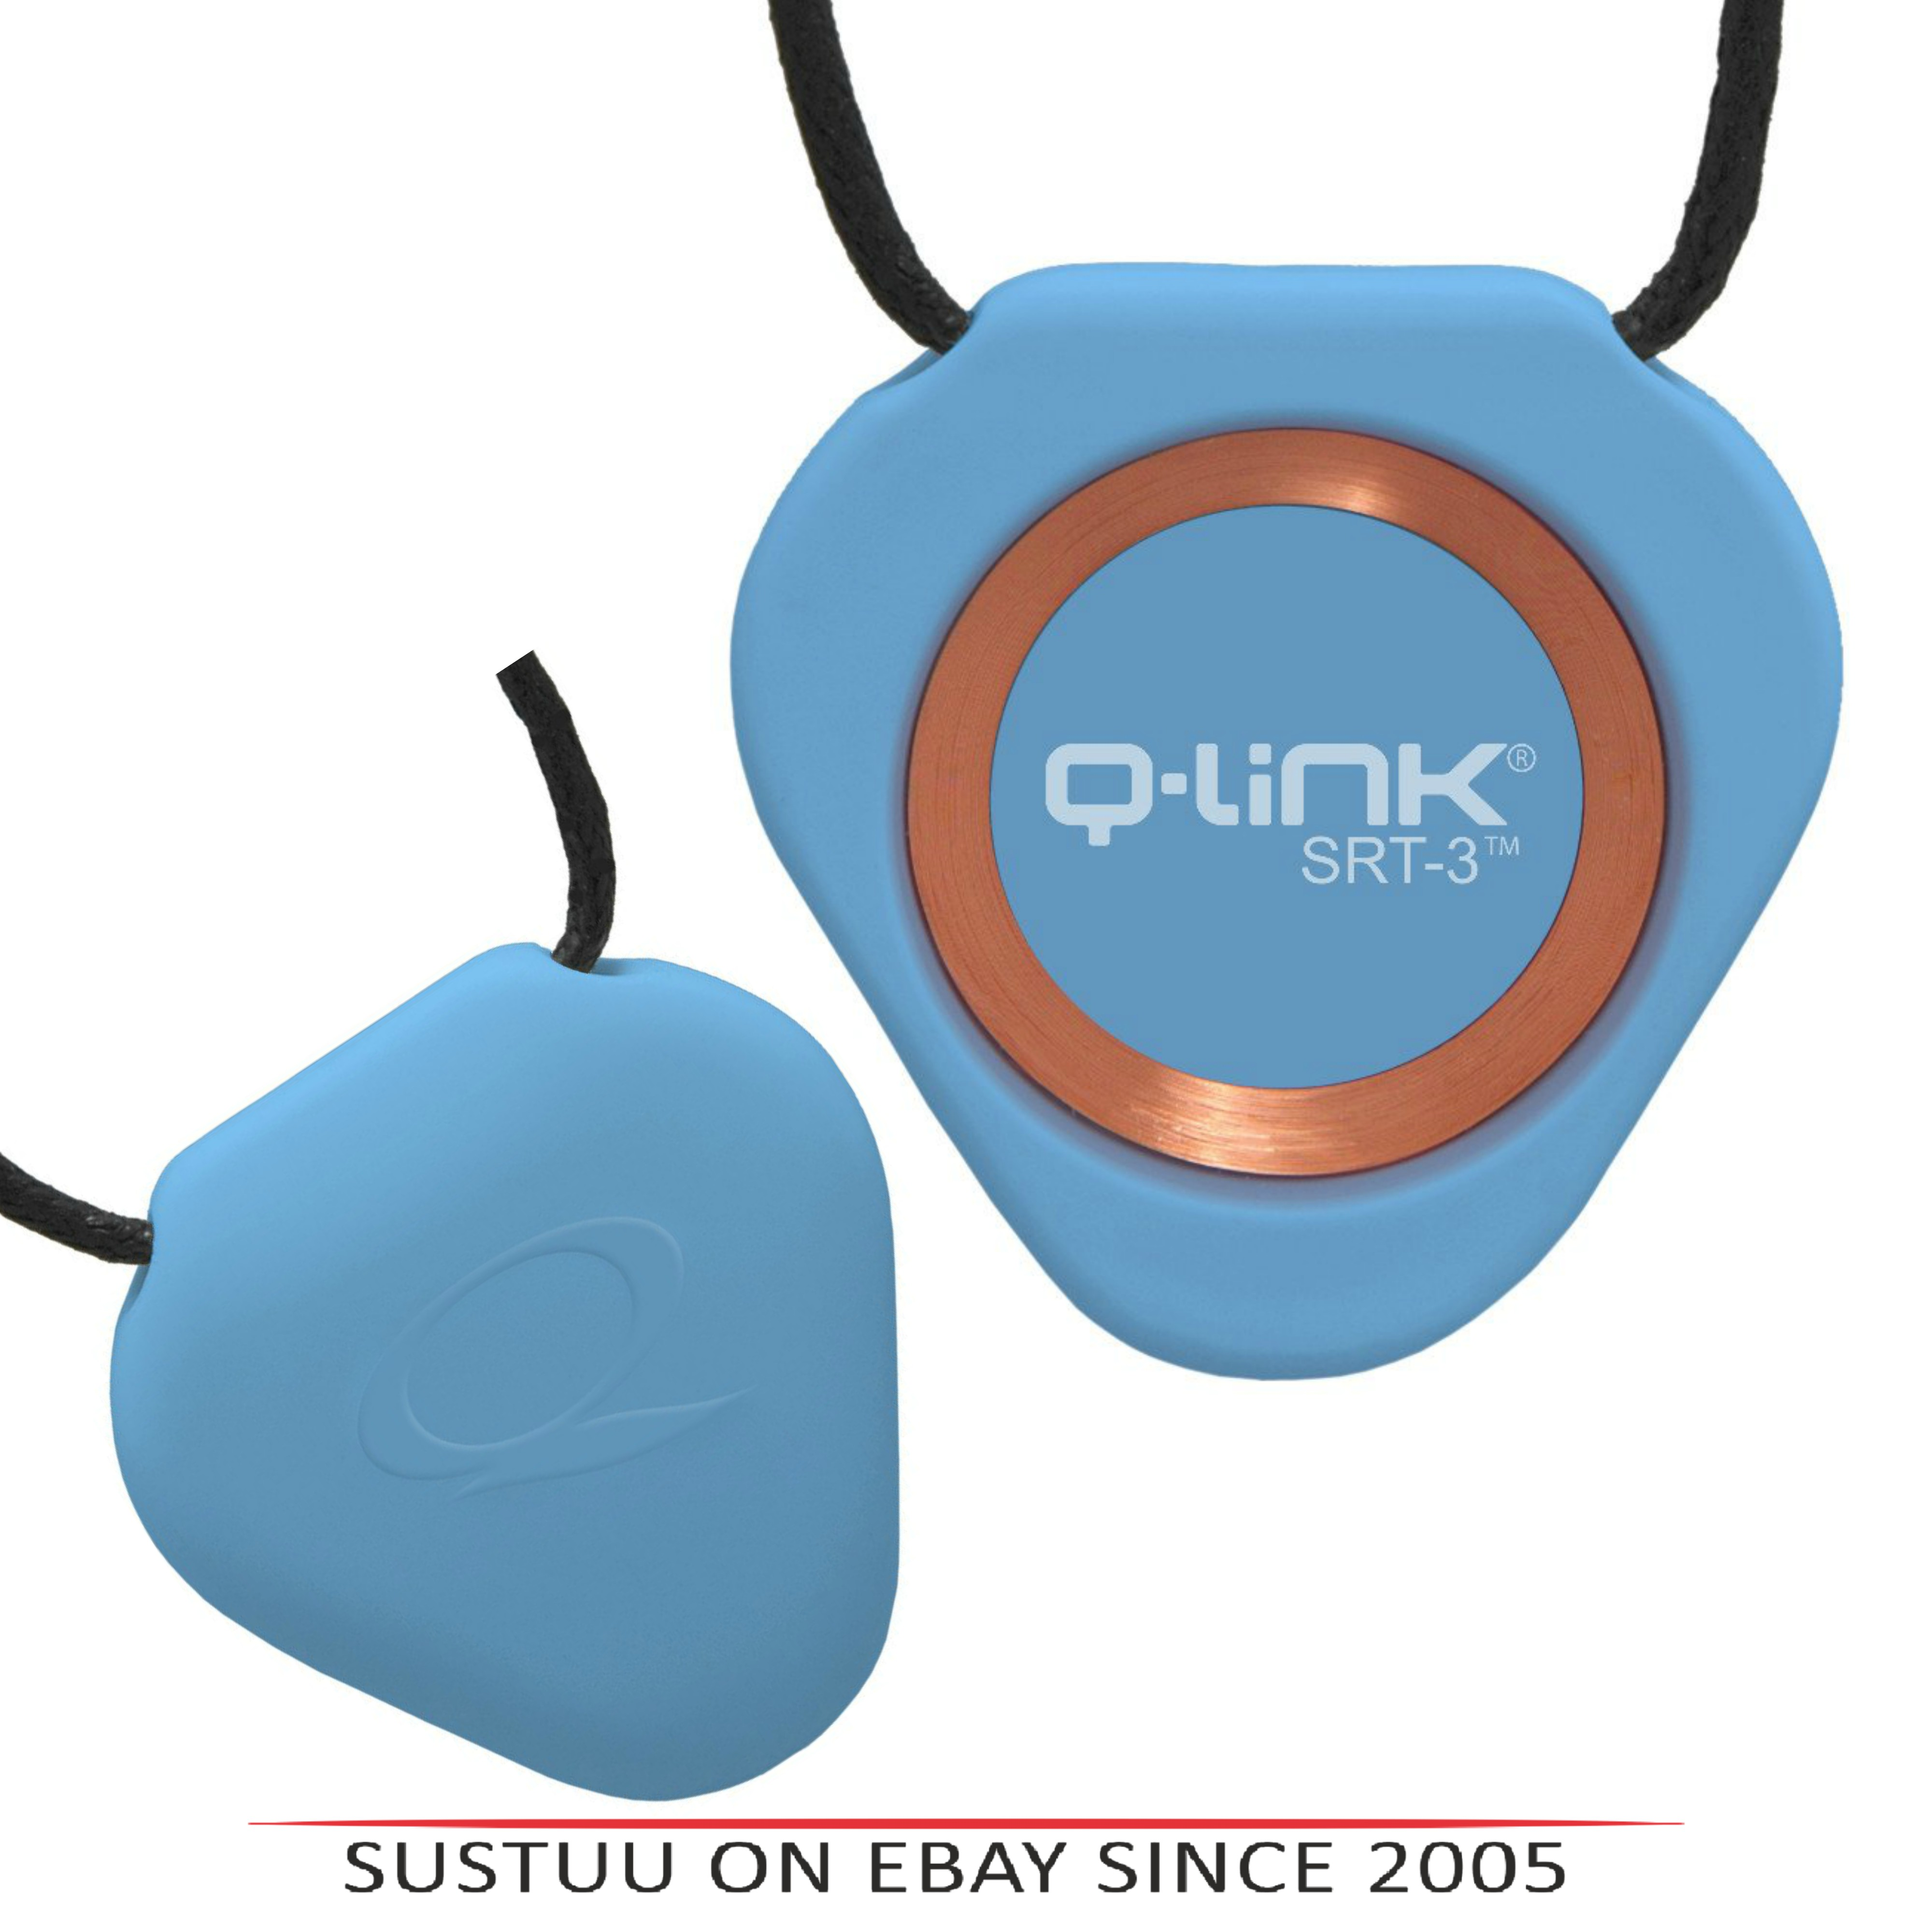 Q-Link Acrylic SRT-3 Triangle Pendant-Trans Blue|For Human Fitness-Peace & Mind